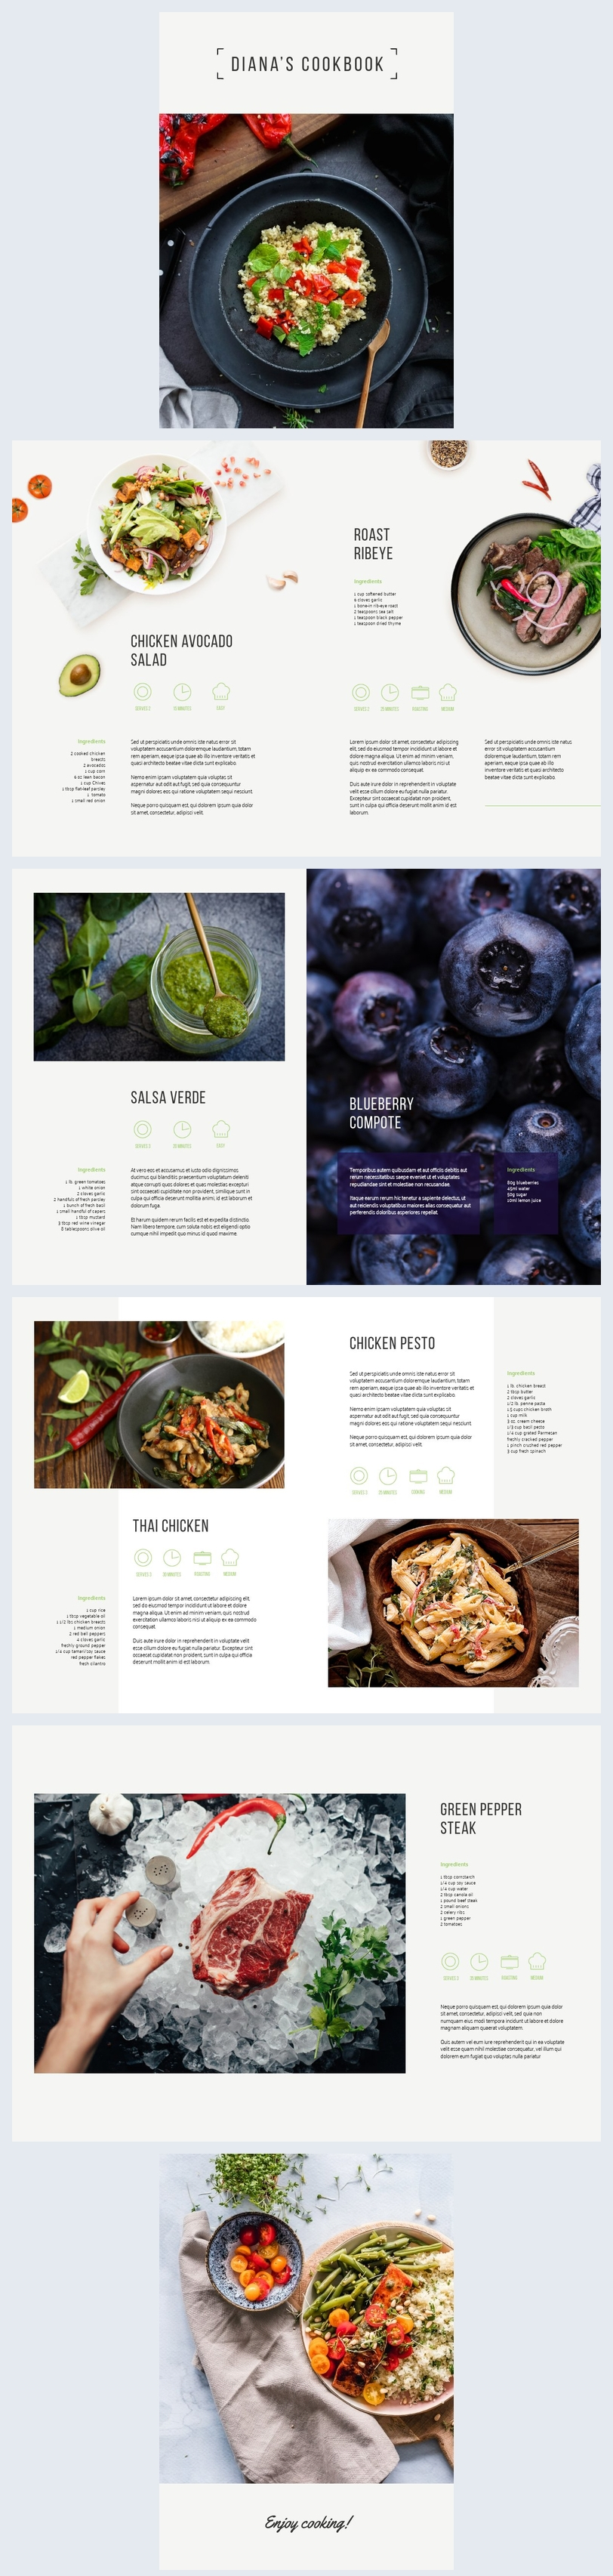 Healthy Food Cookbook Design Example